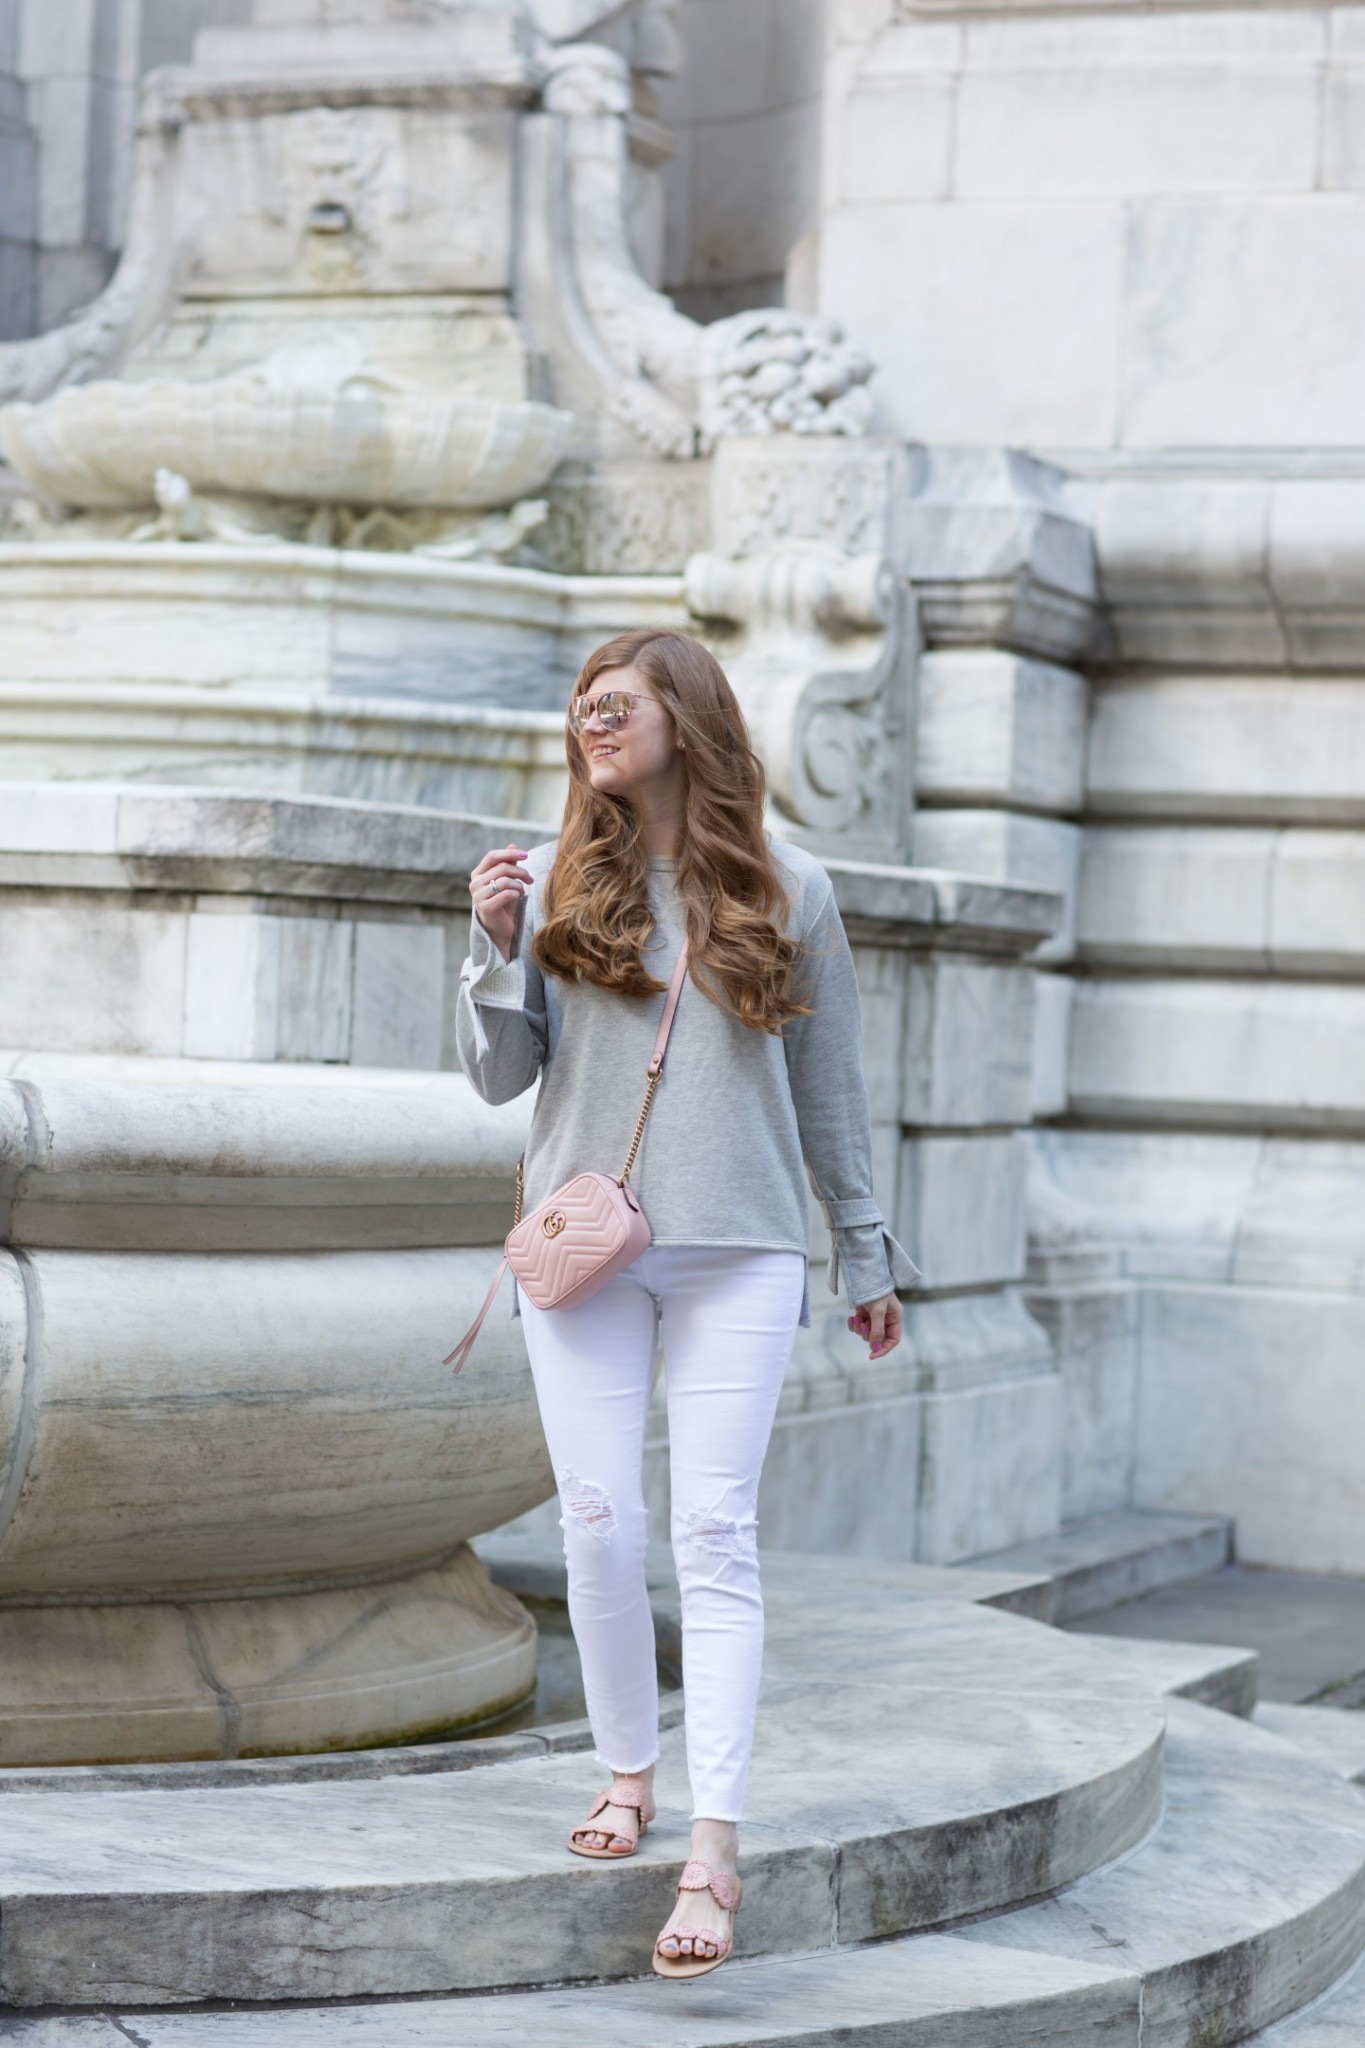 Lifestyle blogger Mollie Sheperdson styles a grey tie sleeve sweatshirt